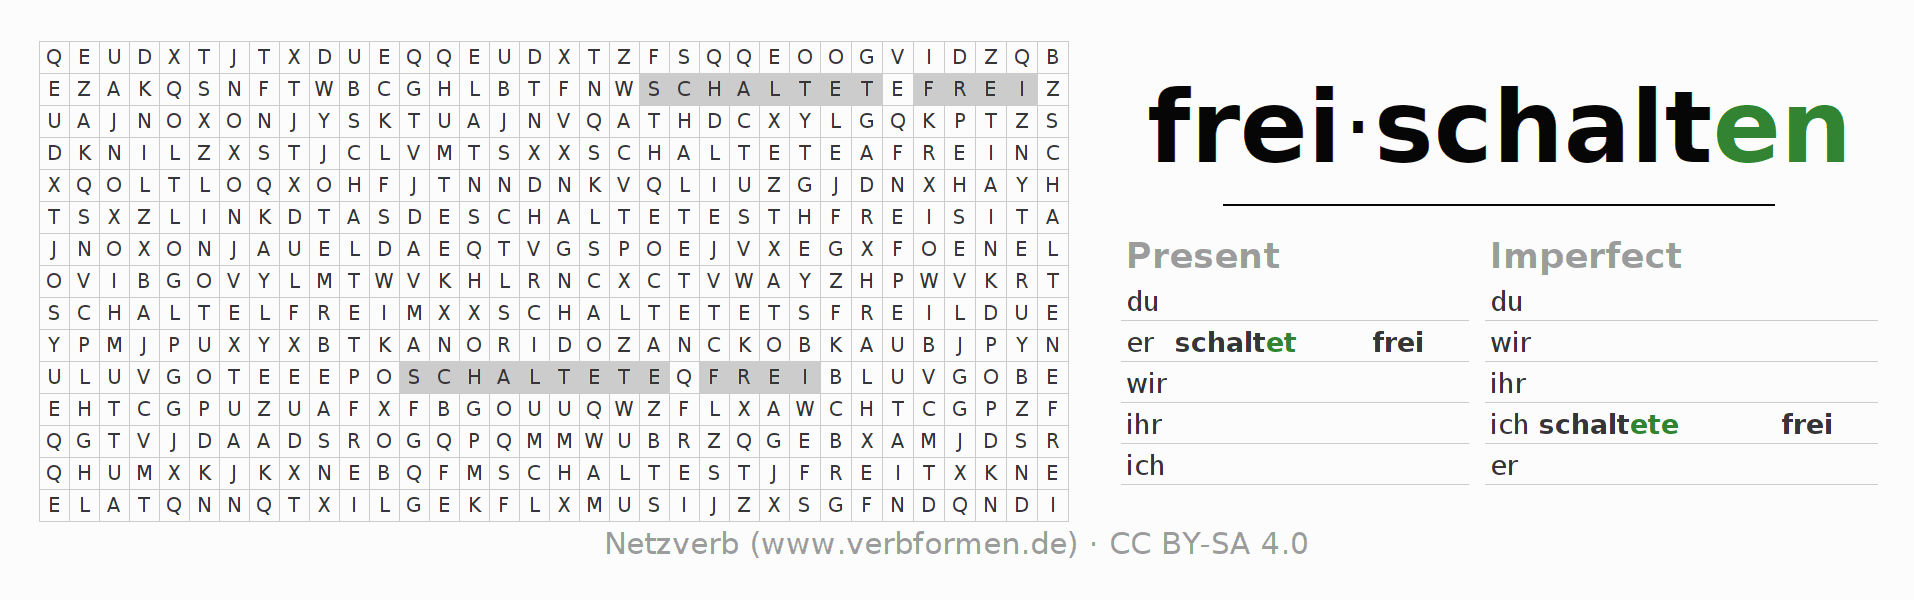 Word search puzzle for the conjugation of the verb freischalten